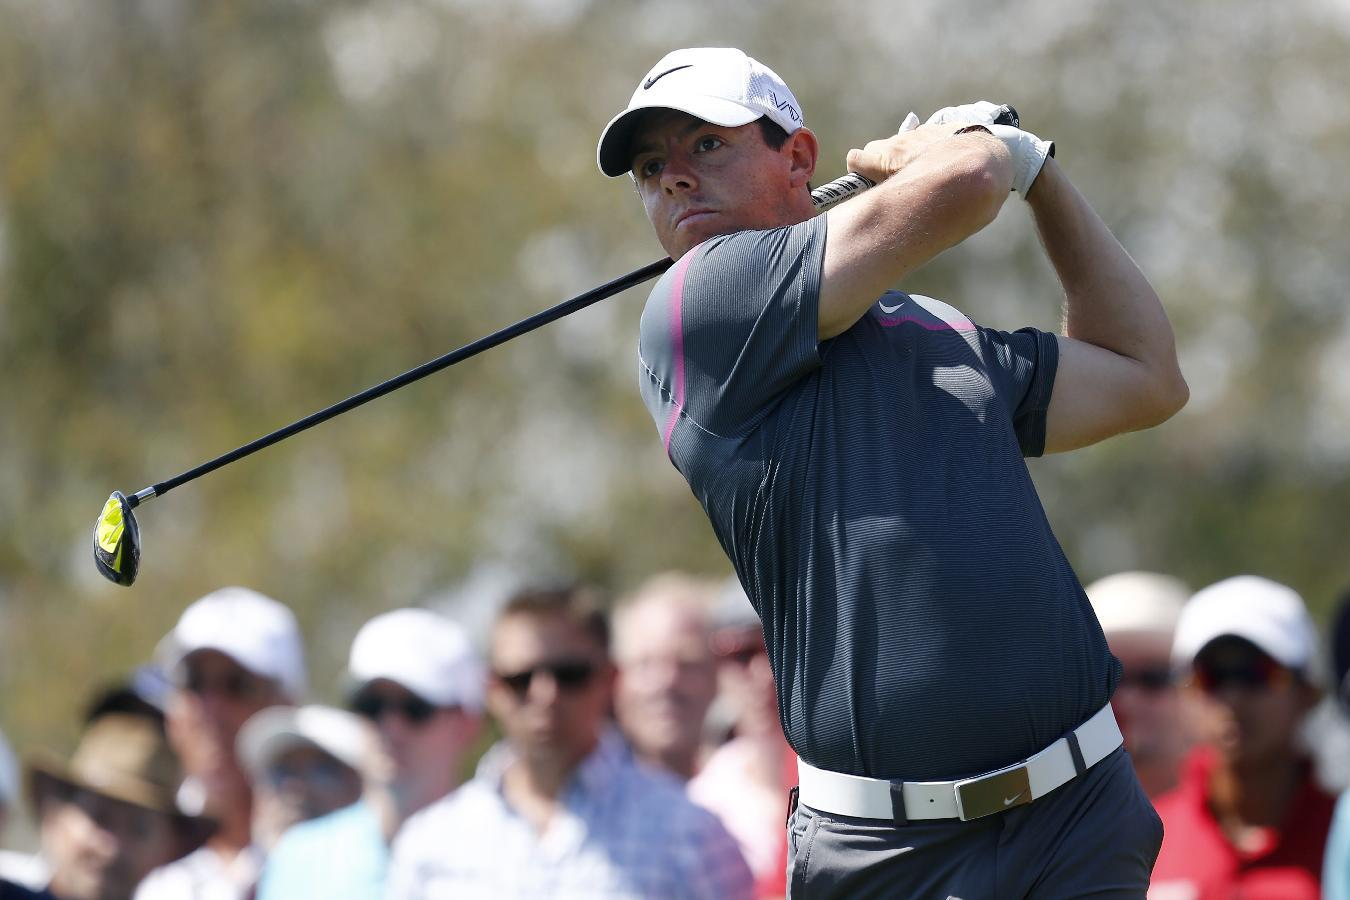 Rory McIlroy's gym routine may convince you to pick up a dumbbell